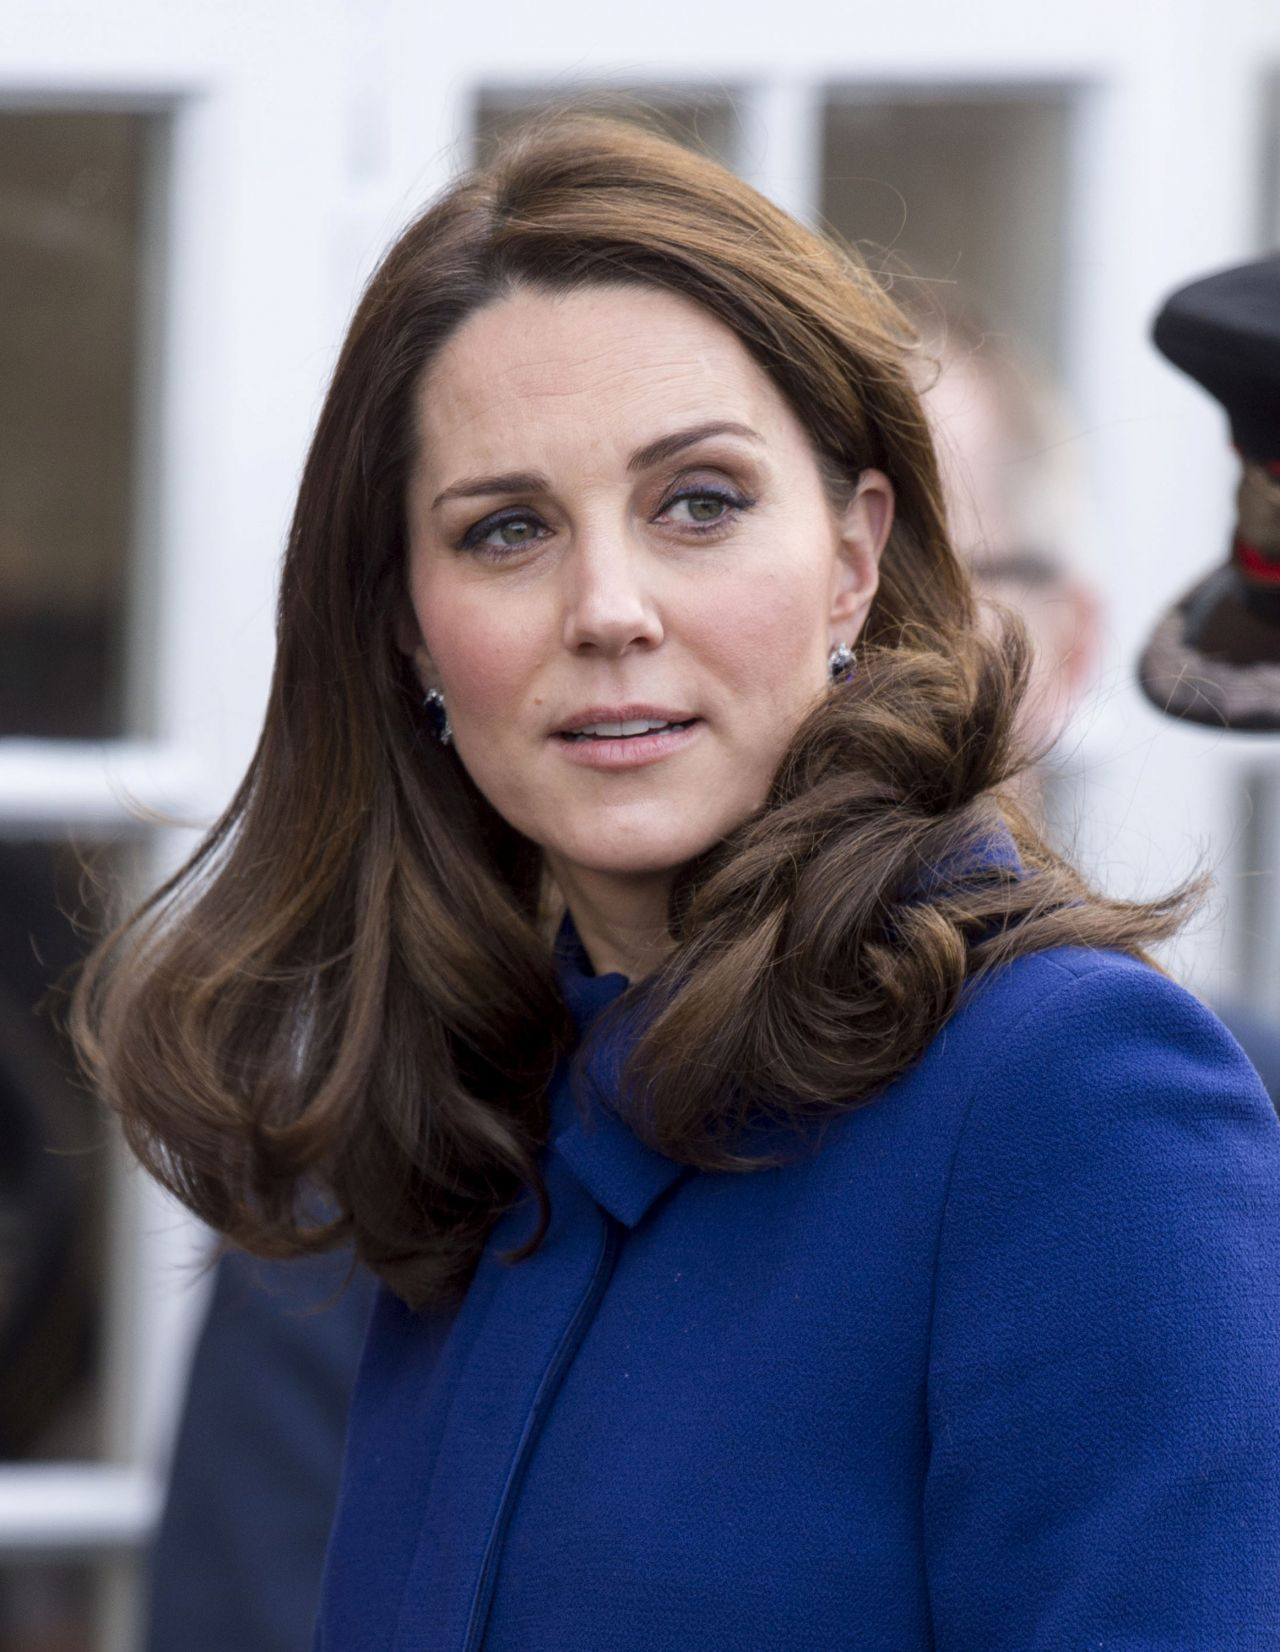 Kate Middleton Opens An Action On Addiction Community